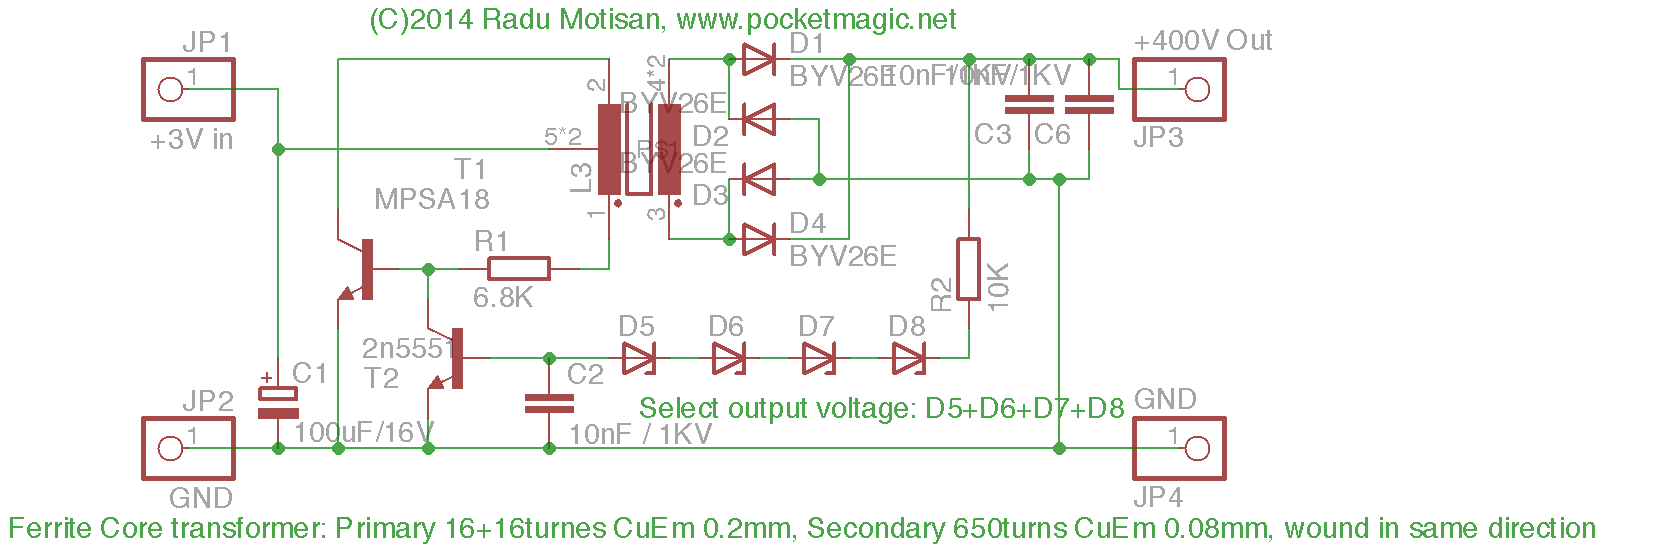 inverter_400V_sch 3v to 400v regulated inverter for geiger counters pocketmagic 400v to 230v transformer wiring diagram at mifinder.co